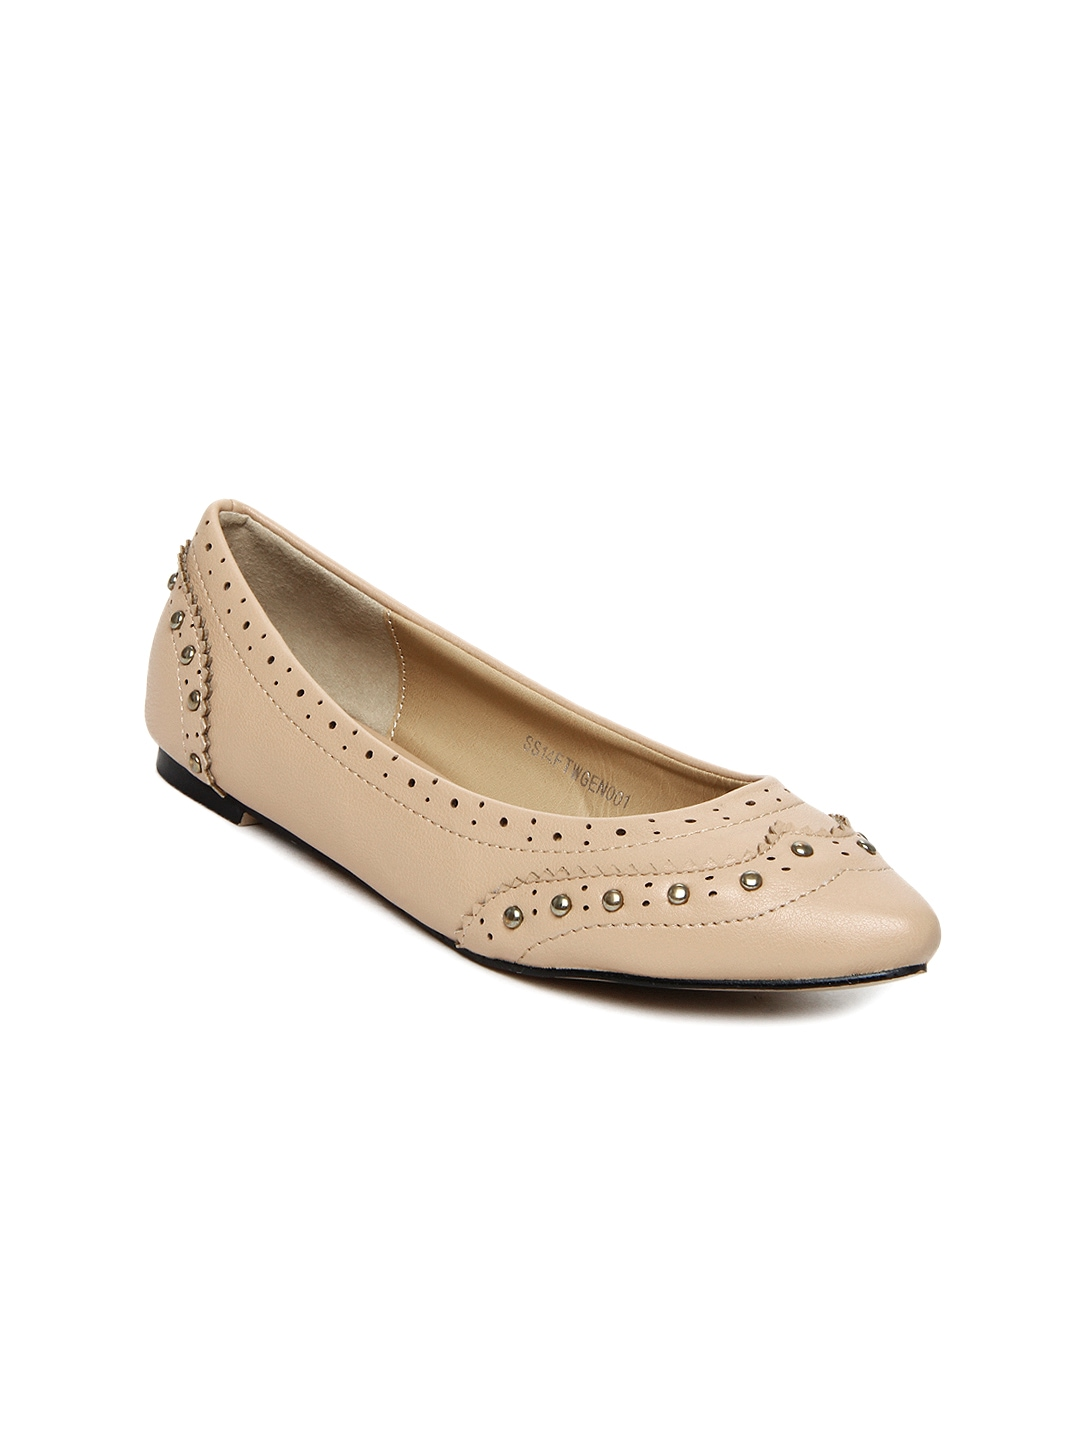 Free shipping BOTH ways on Flats, Beige, Women, from our vast selection of styles. Fast delivery, and 24/7/ real-person service with a smile. Click or call